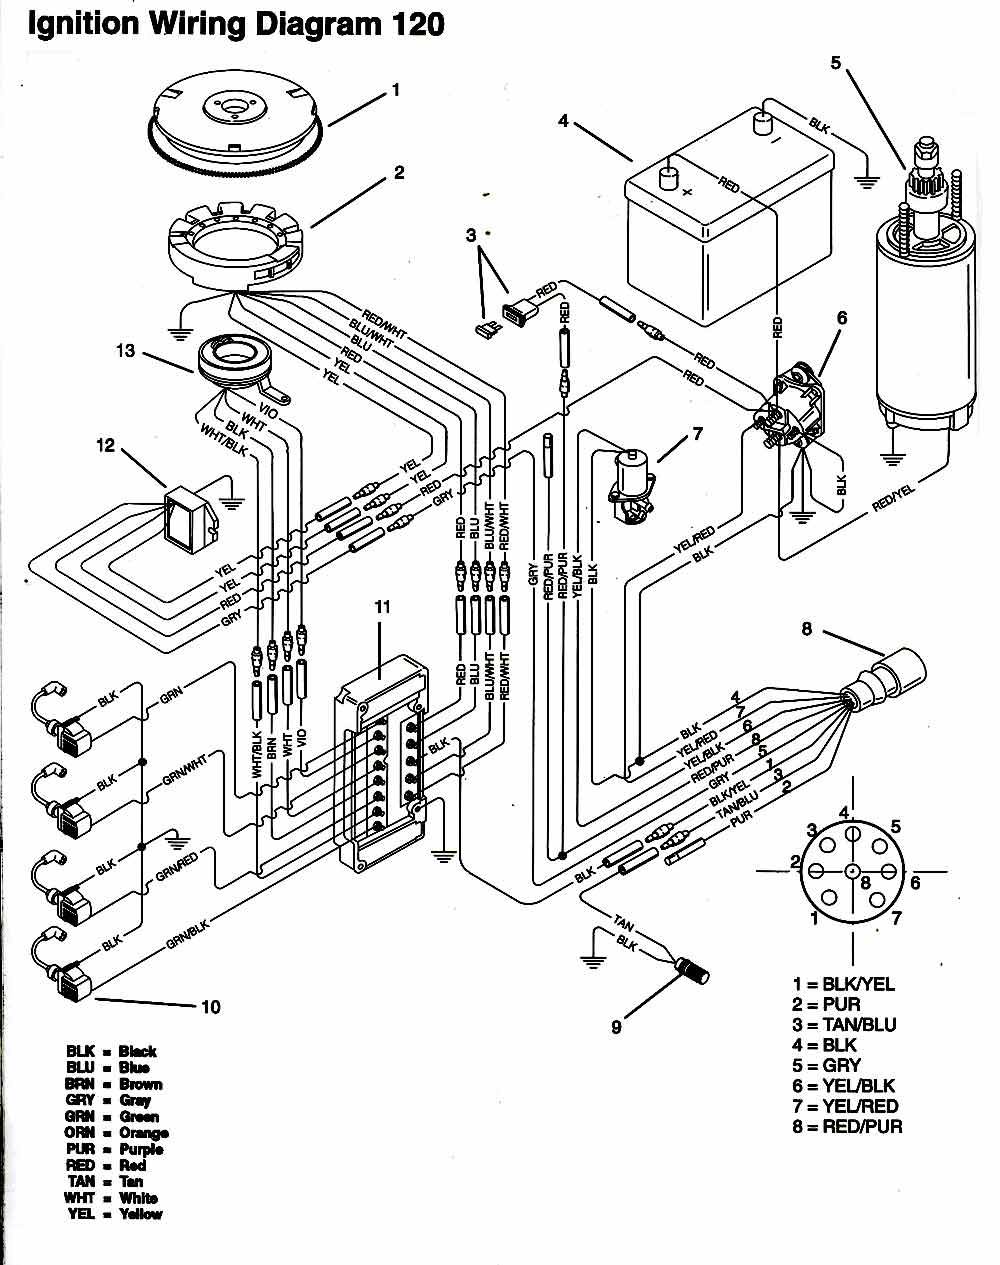 boat motor wiring diagram detailed schematics diagram rh  highcliffemedicalcentre com 25 Evinrude Ignition Wiring Diagram Evinrude  Outboard Motor Wiring ...